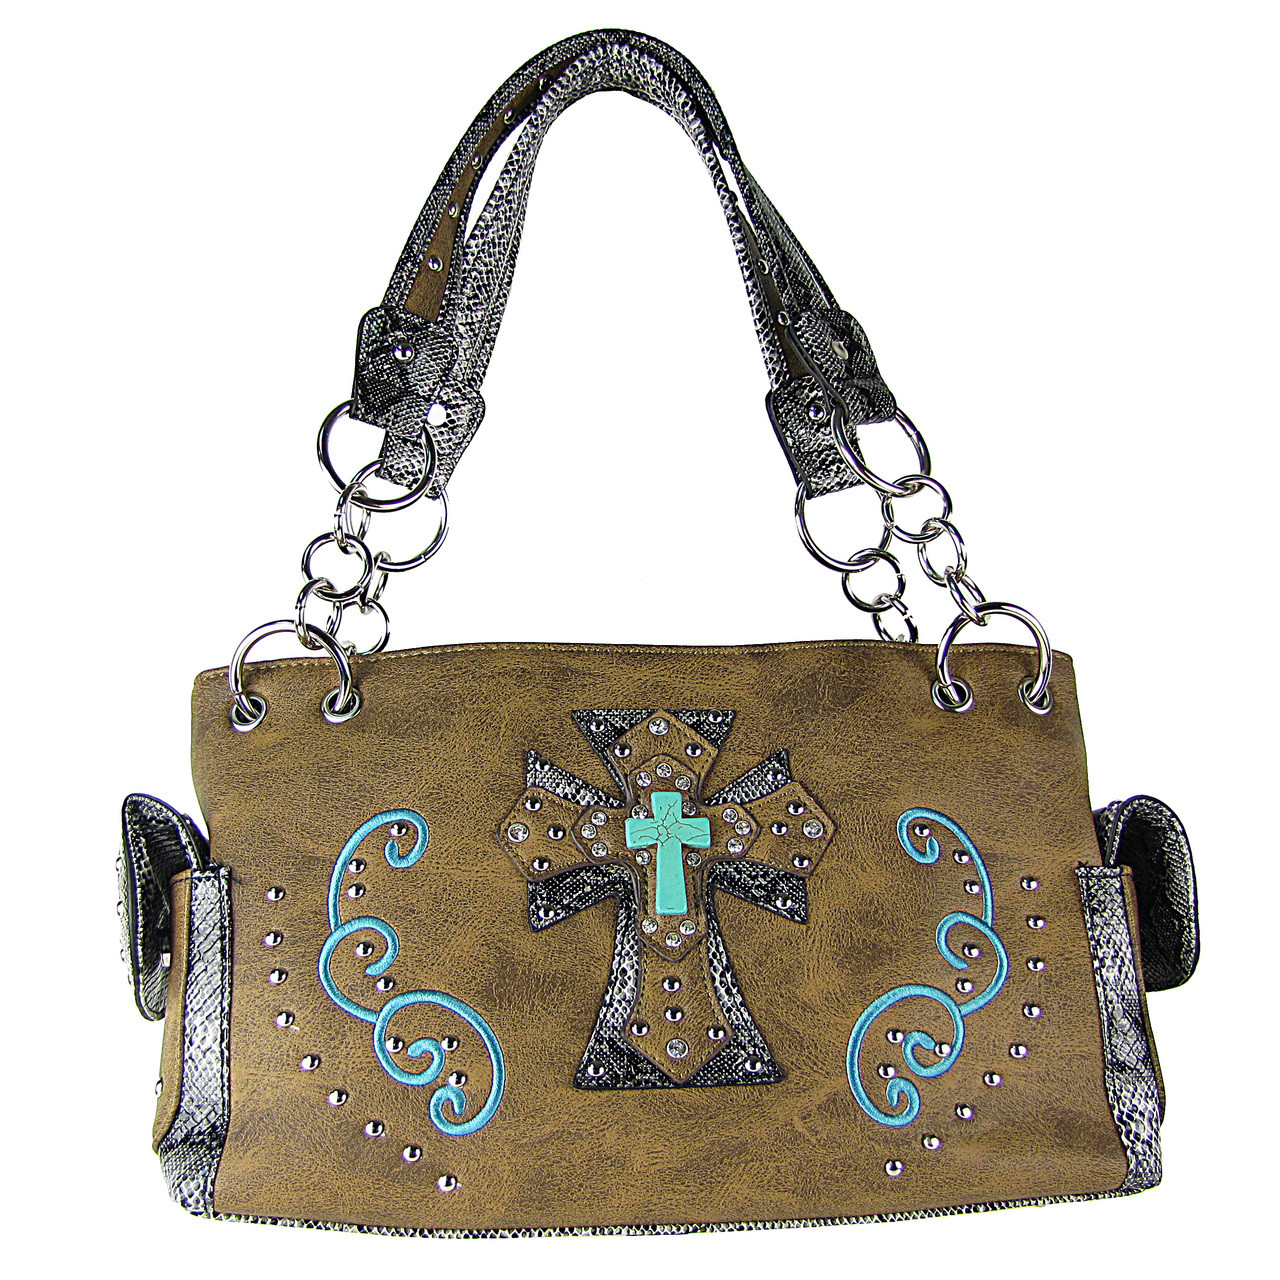 BROWN REPTILE STUDDED RHINESTONE BLUE STONE CROSS LOOK SHOULDER HANDBAG HB1-W3CCRBRN